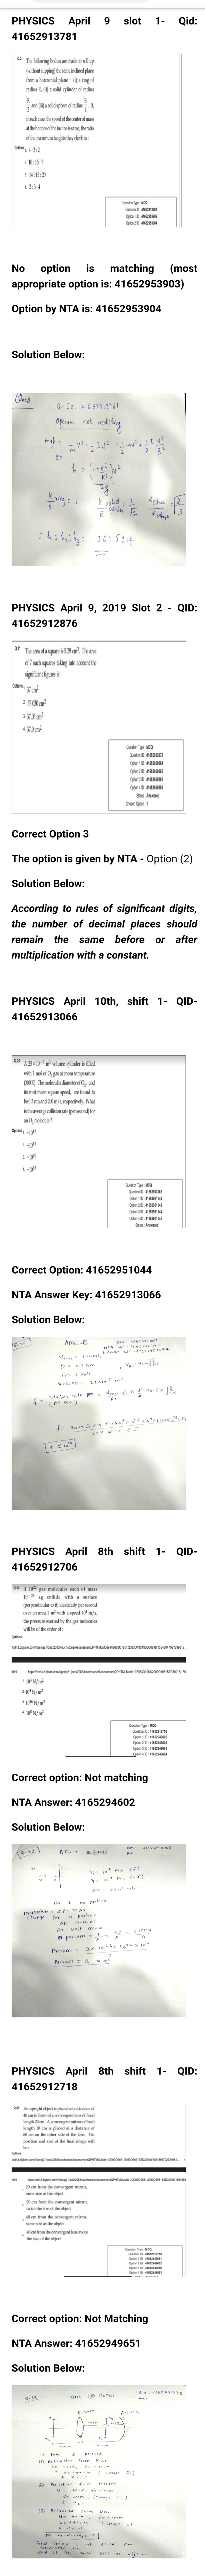 JEE Main April Wrong Question 2019